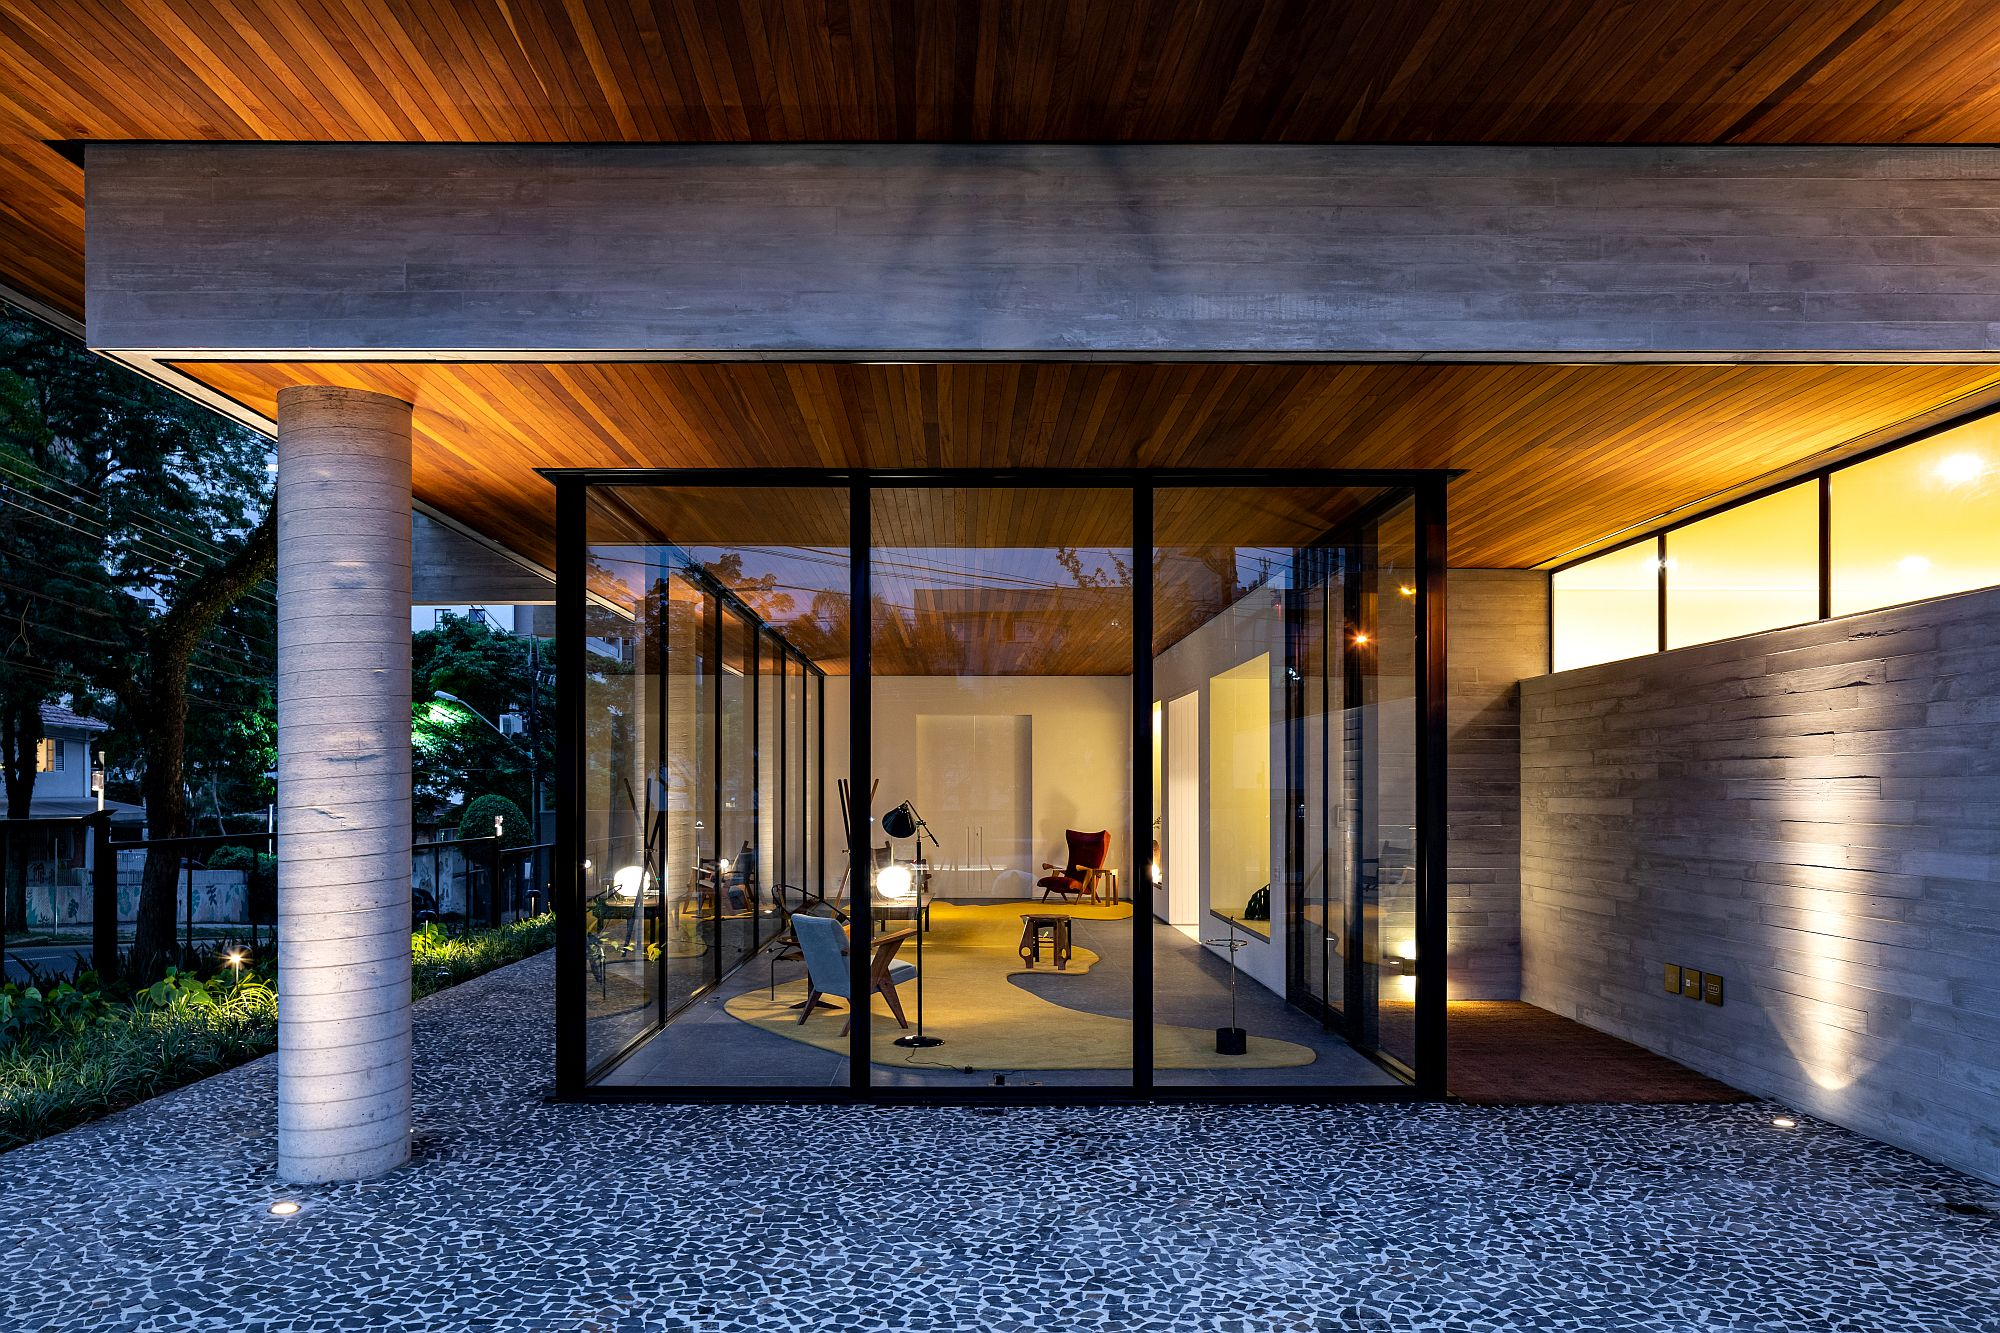 Lighting with recessed and pendant lights take ove after sunset